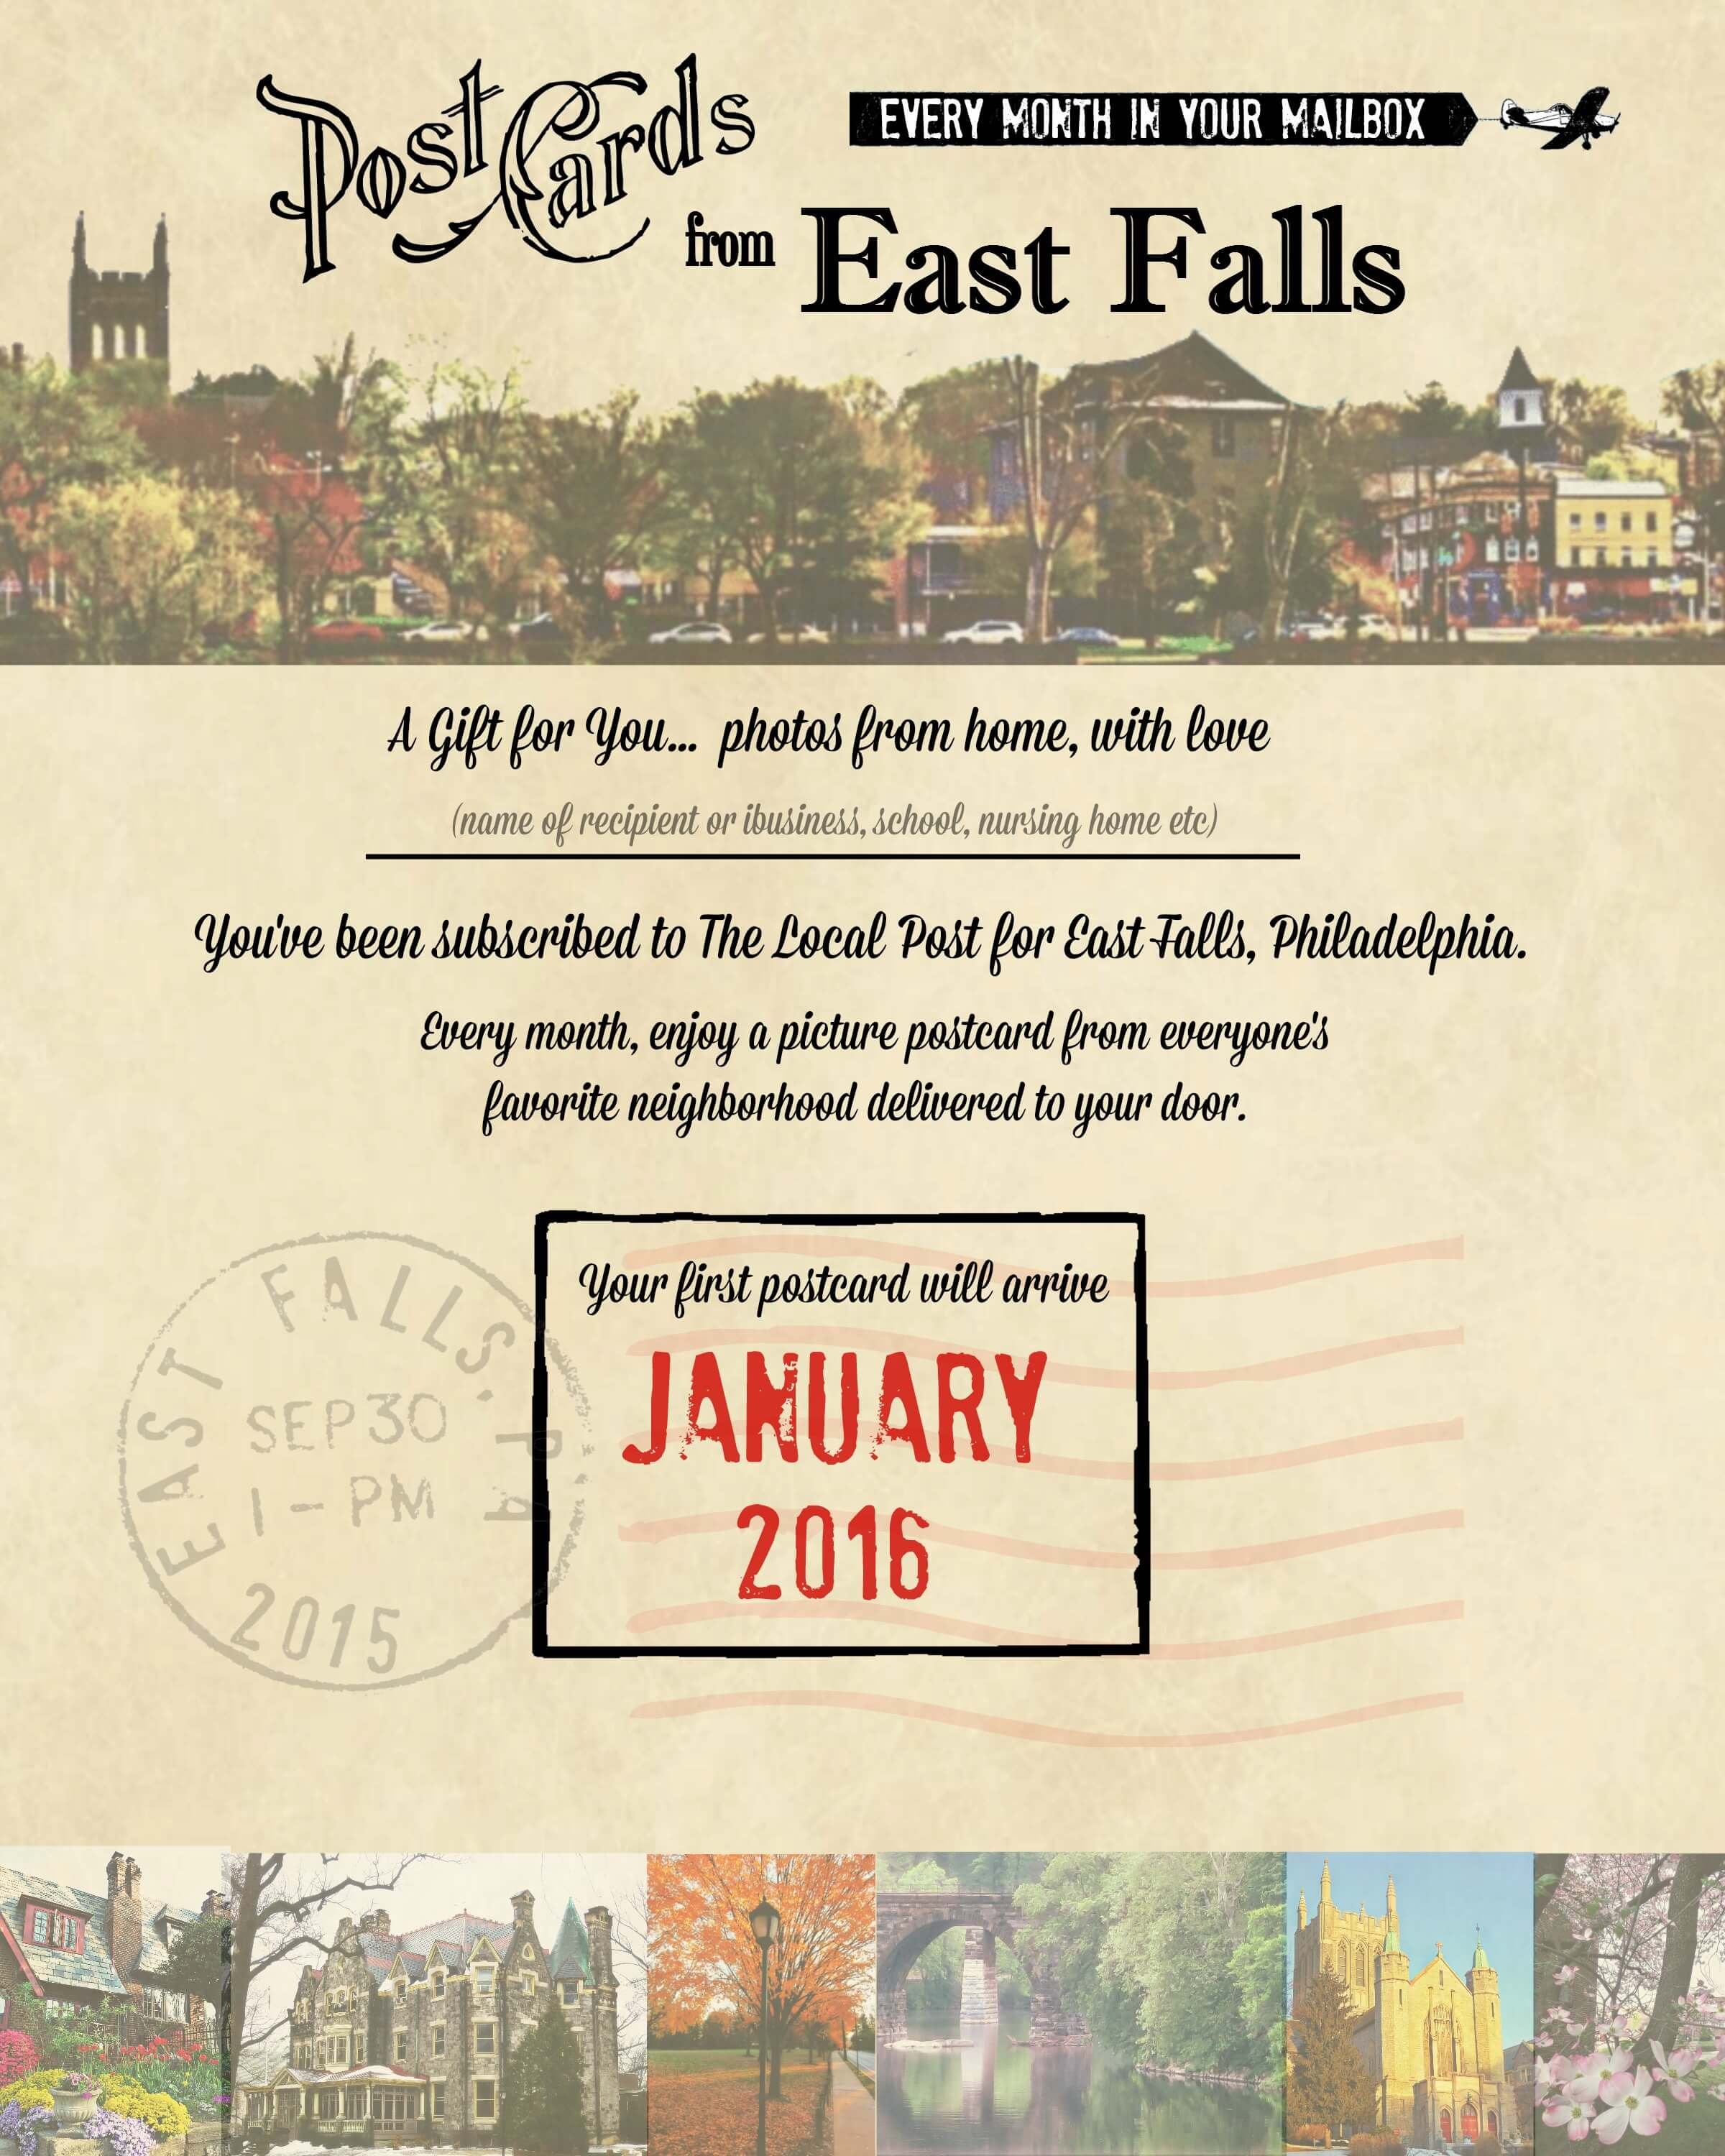 eastfallslocal postcards from east falls cert paparus blank name line with text